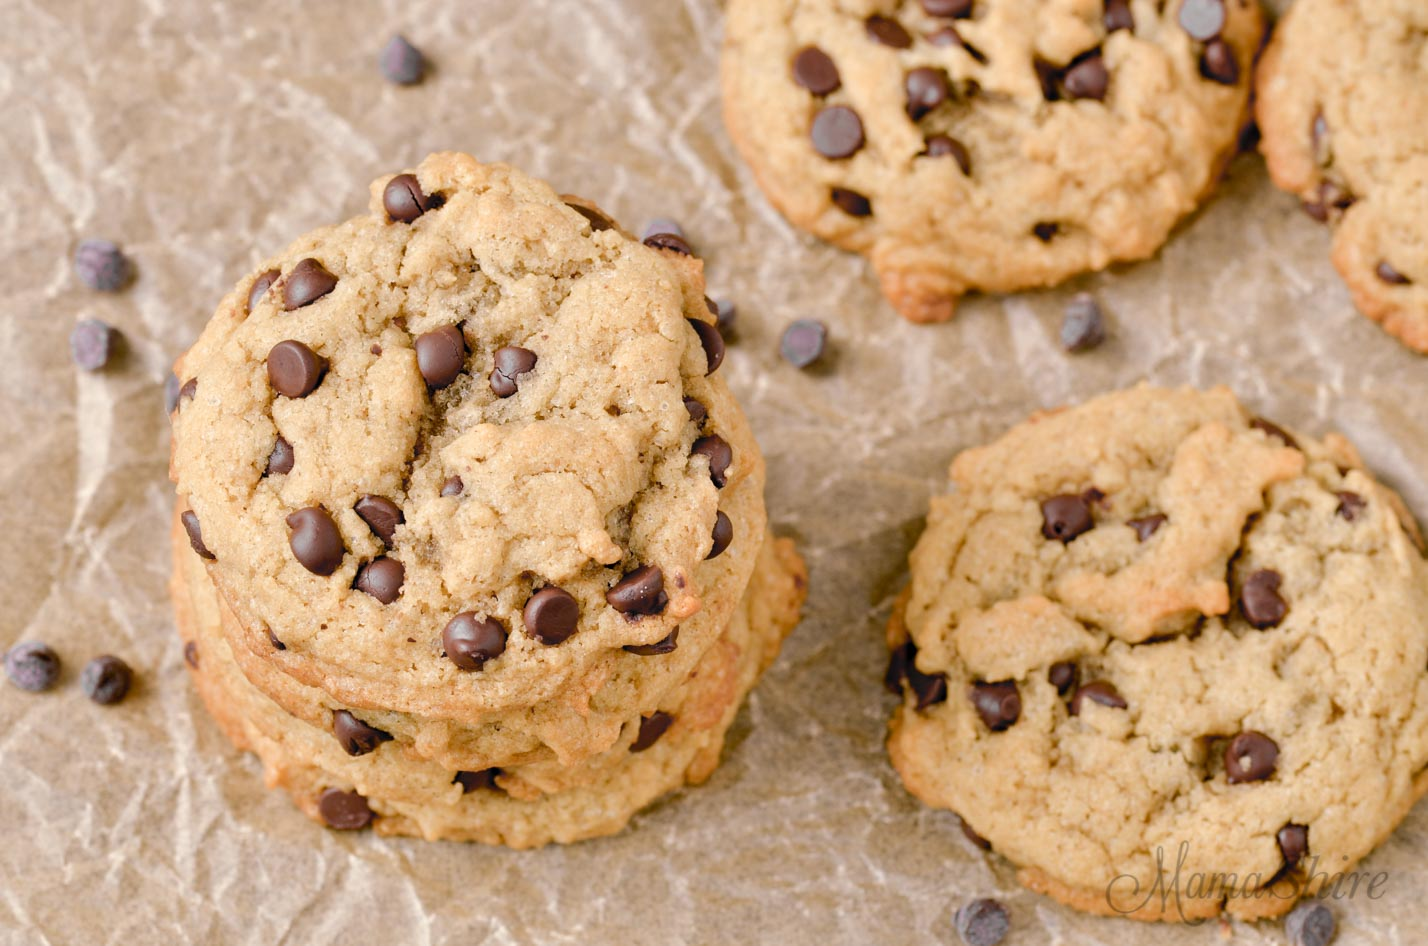 Gluten-Free Peanut Butter Chocolate Chip Cookies in my Gluten-Free Christmas Cookies Roundup.